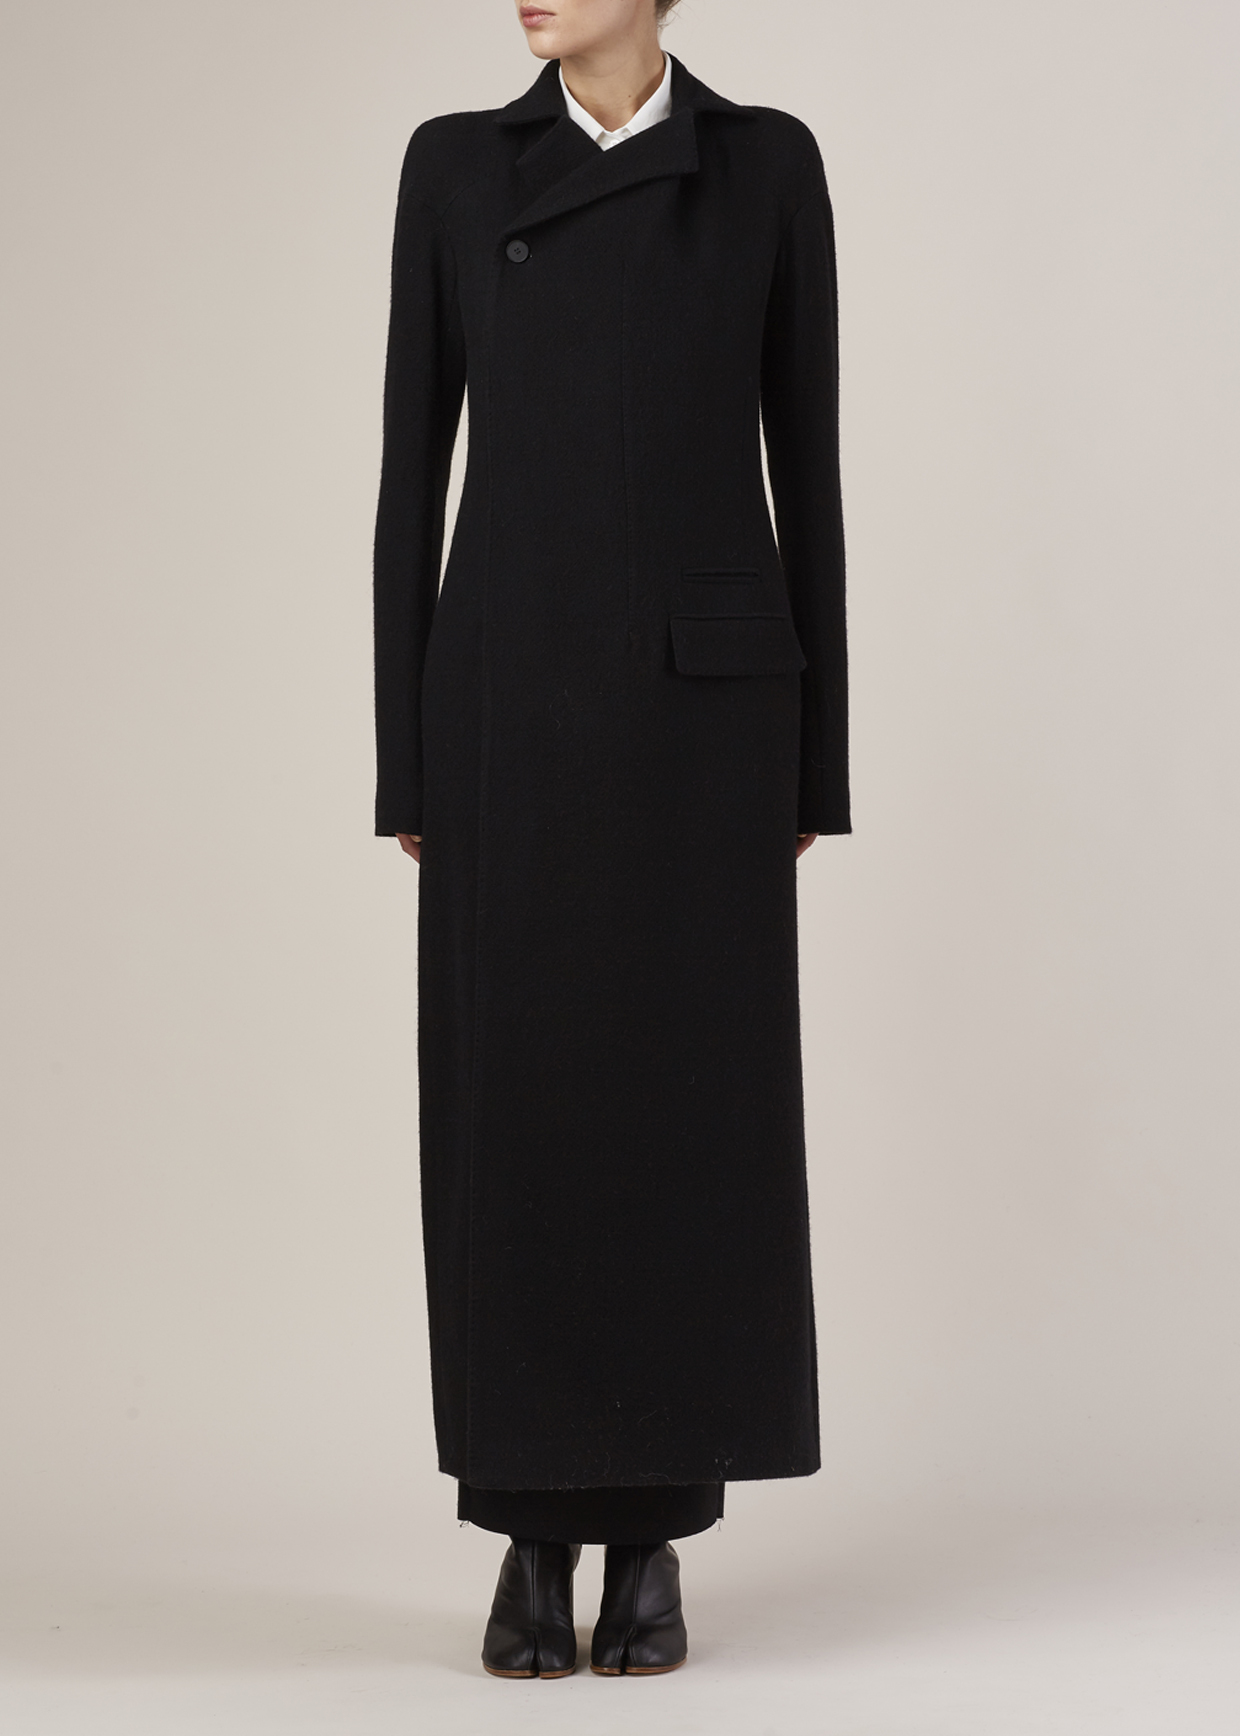 Haider ackermann Black Long Wool Linen Coat in Black | Lyst